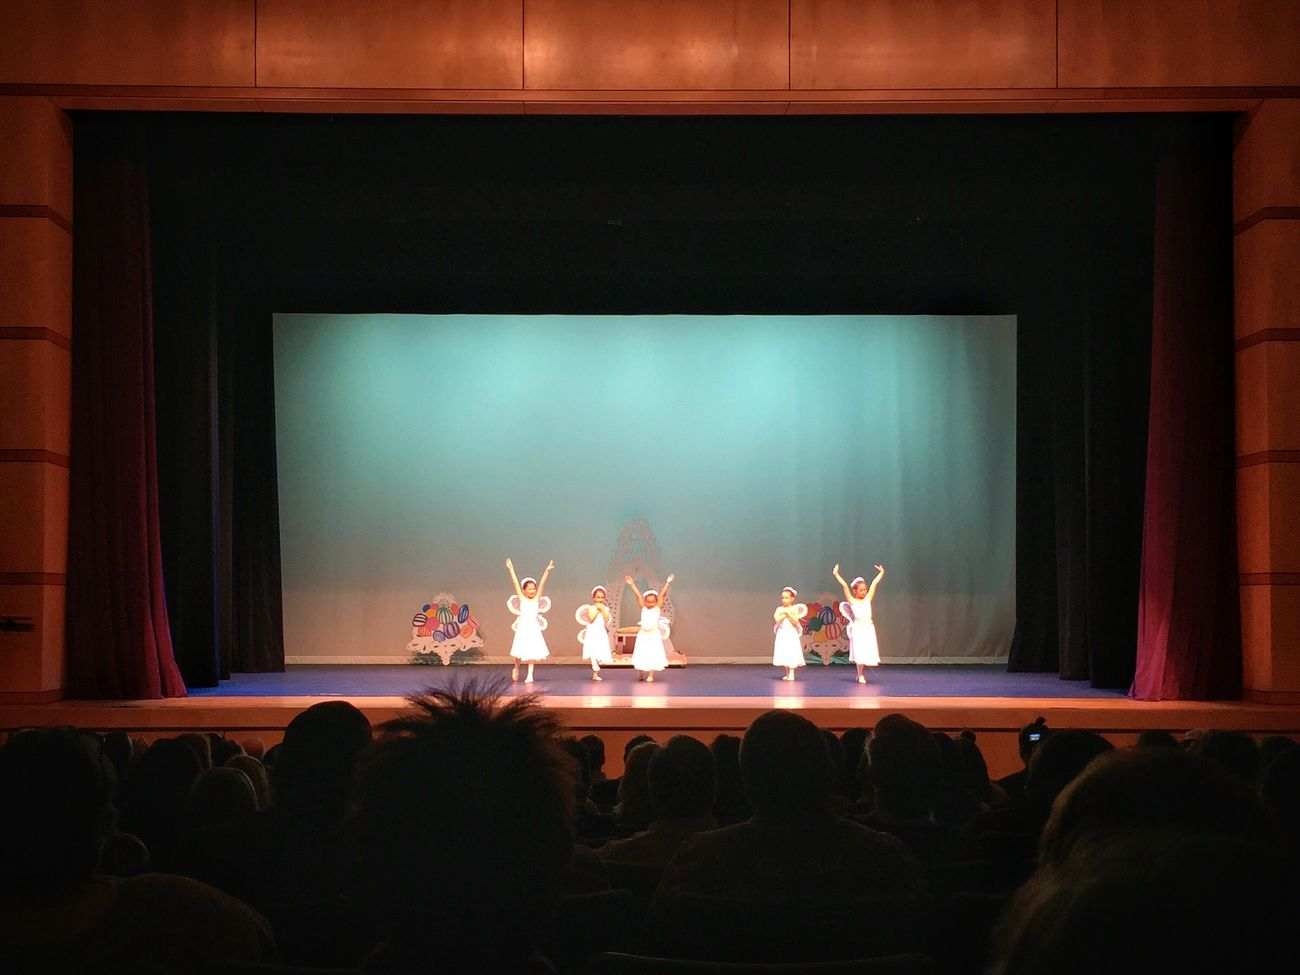 Arts Culture And Entertainment Indoors  Projection Screen Illuminated Stage - Performance Space Audience Dance Dancing Performance Kids Being Kids Kid Kids Ballett Ballerina Ballet Dancer